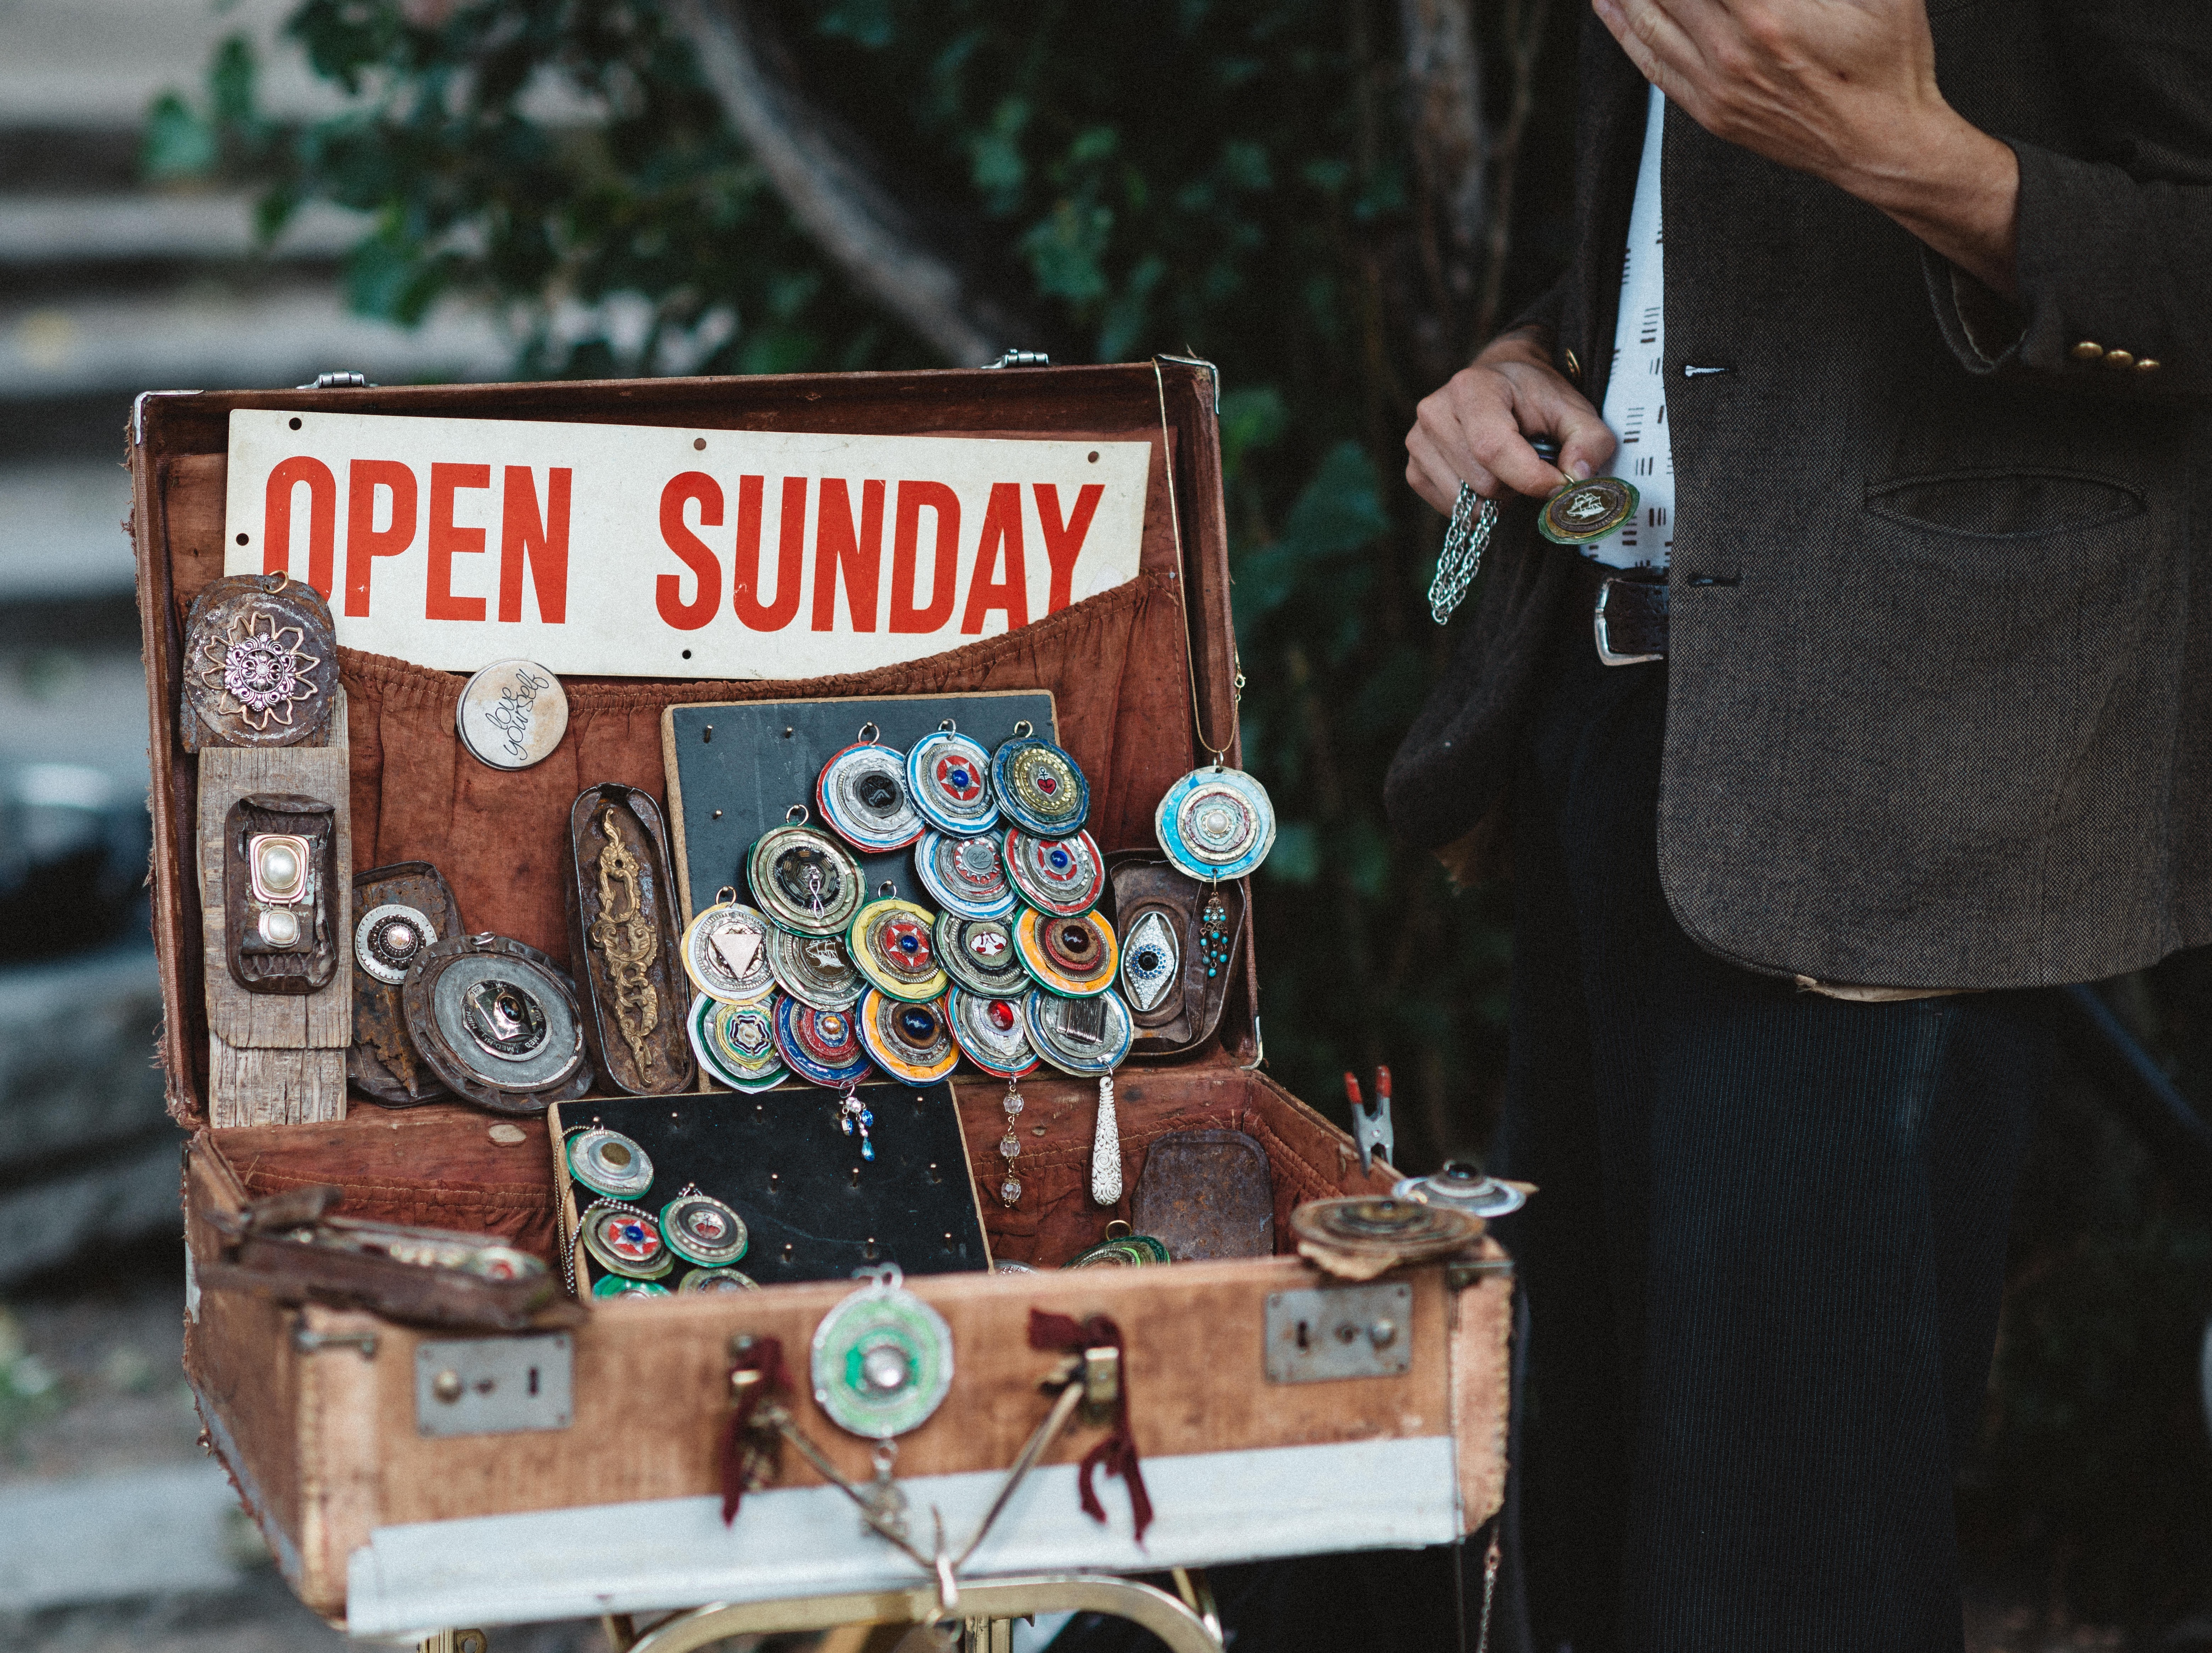 picture of a sign that says open sunday